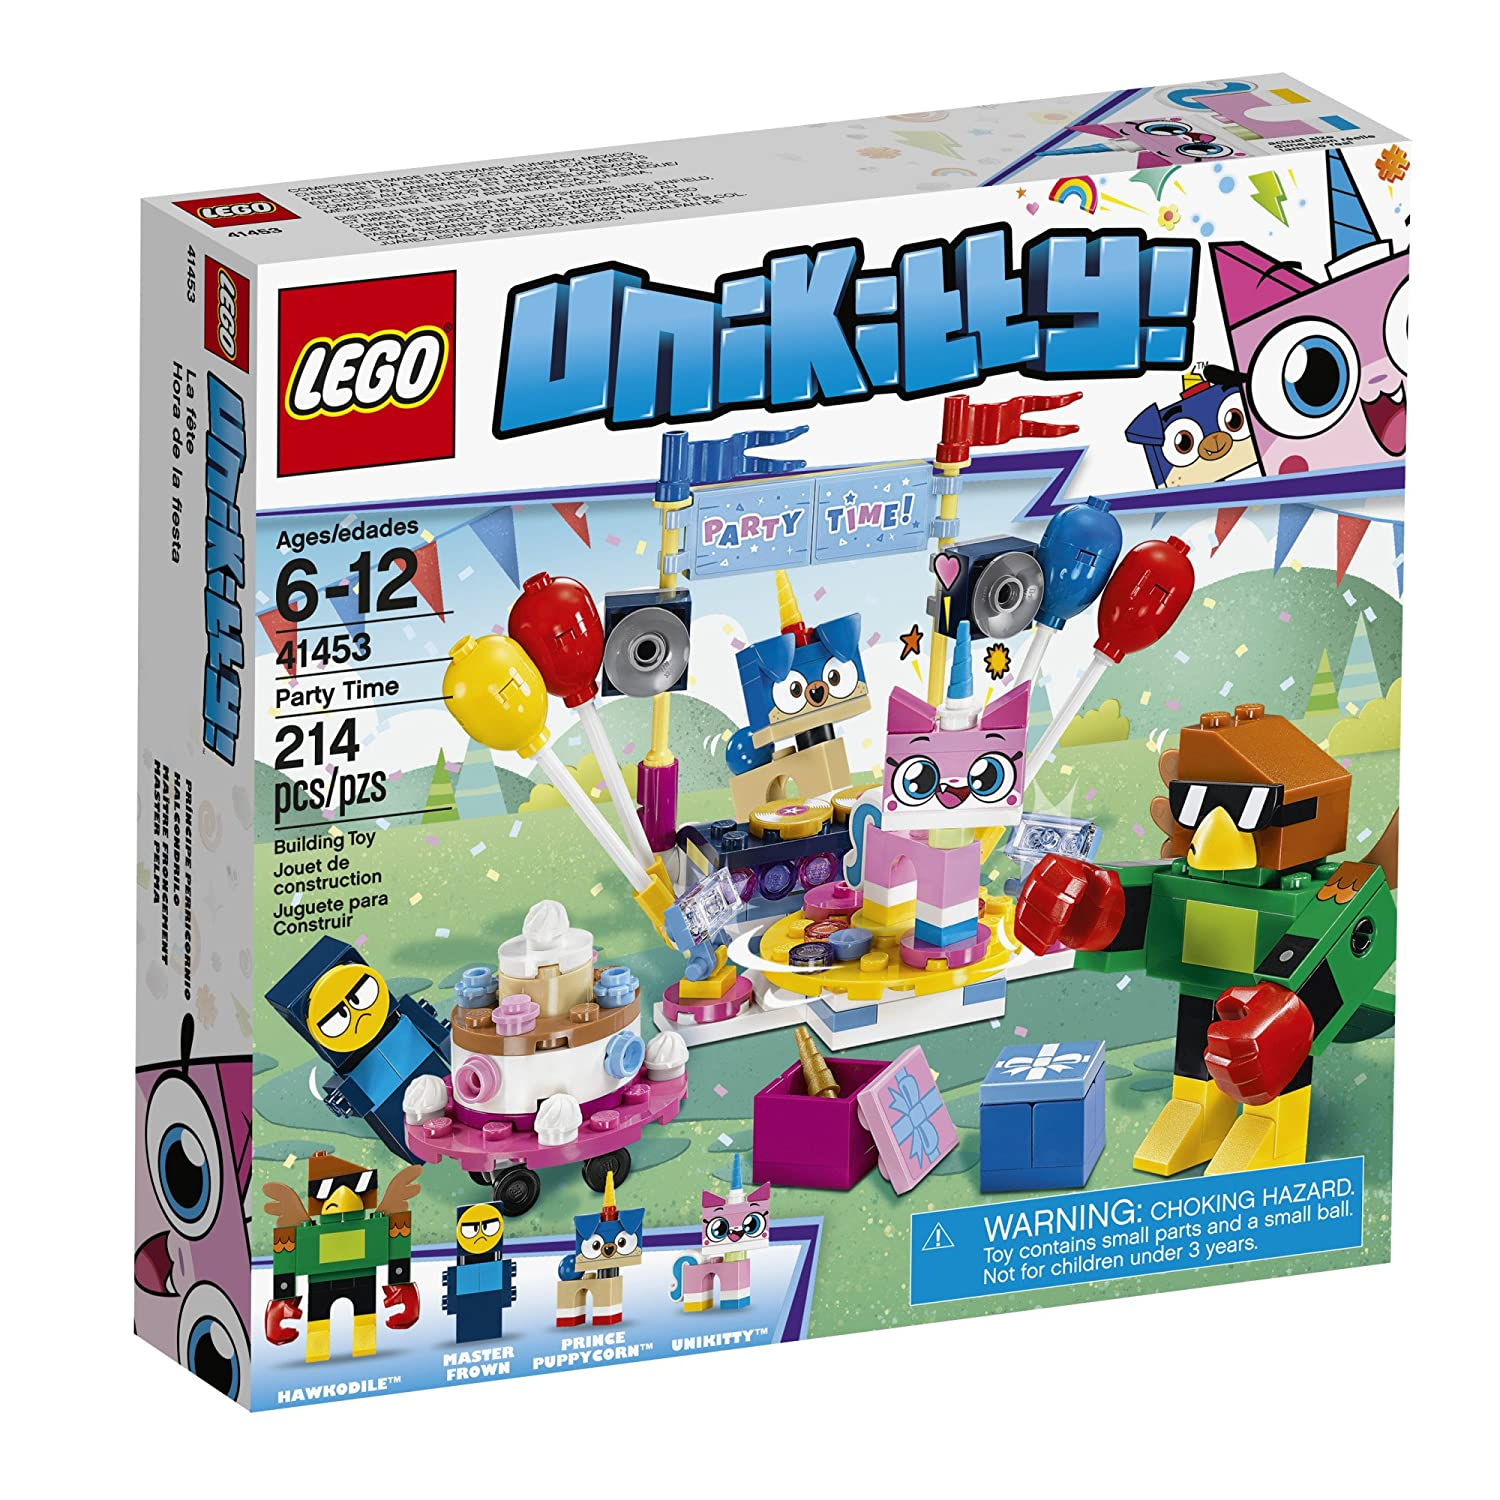 Top 7 Best LEGO Unikitty Sets Reviews in 2020 1